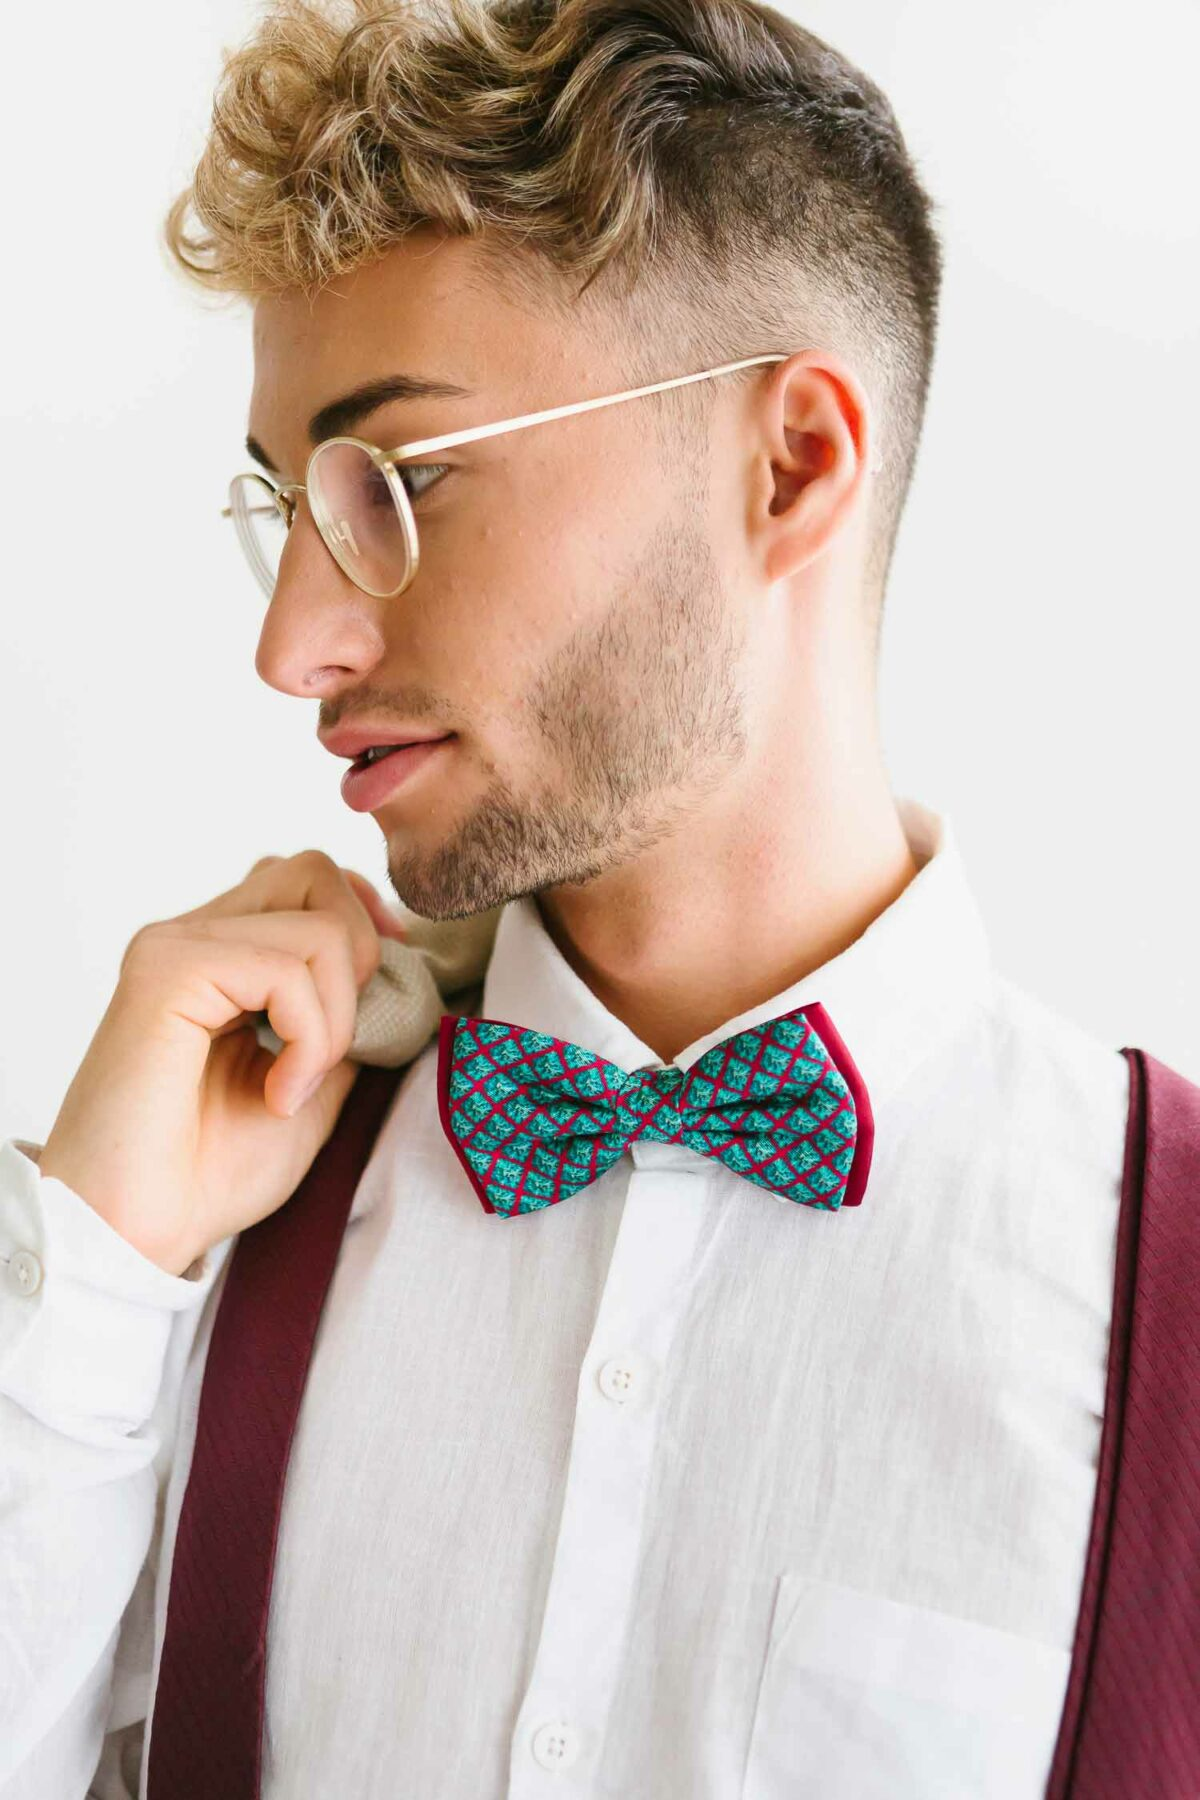 man with bordeaux red suspenders and a blue bowtie